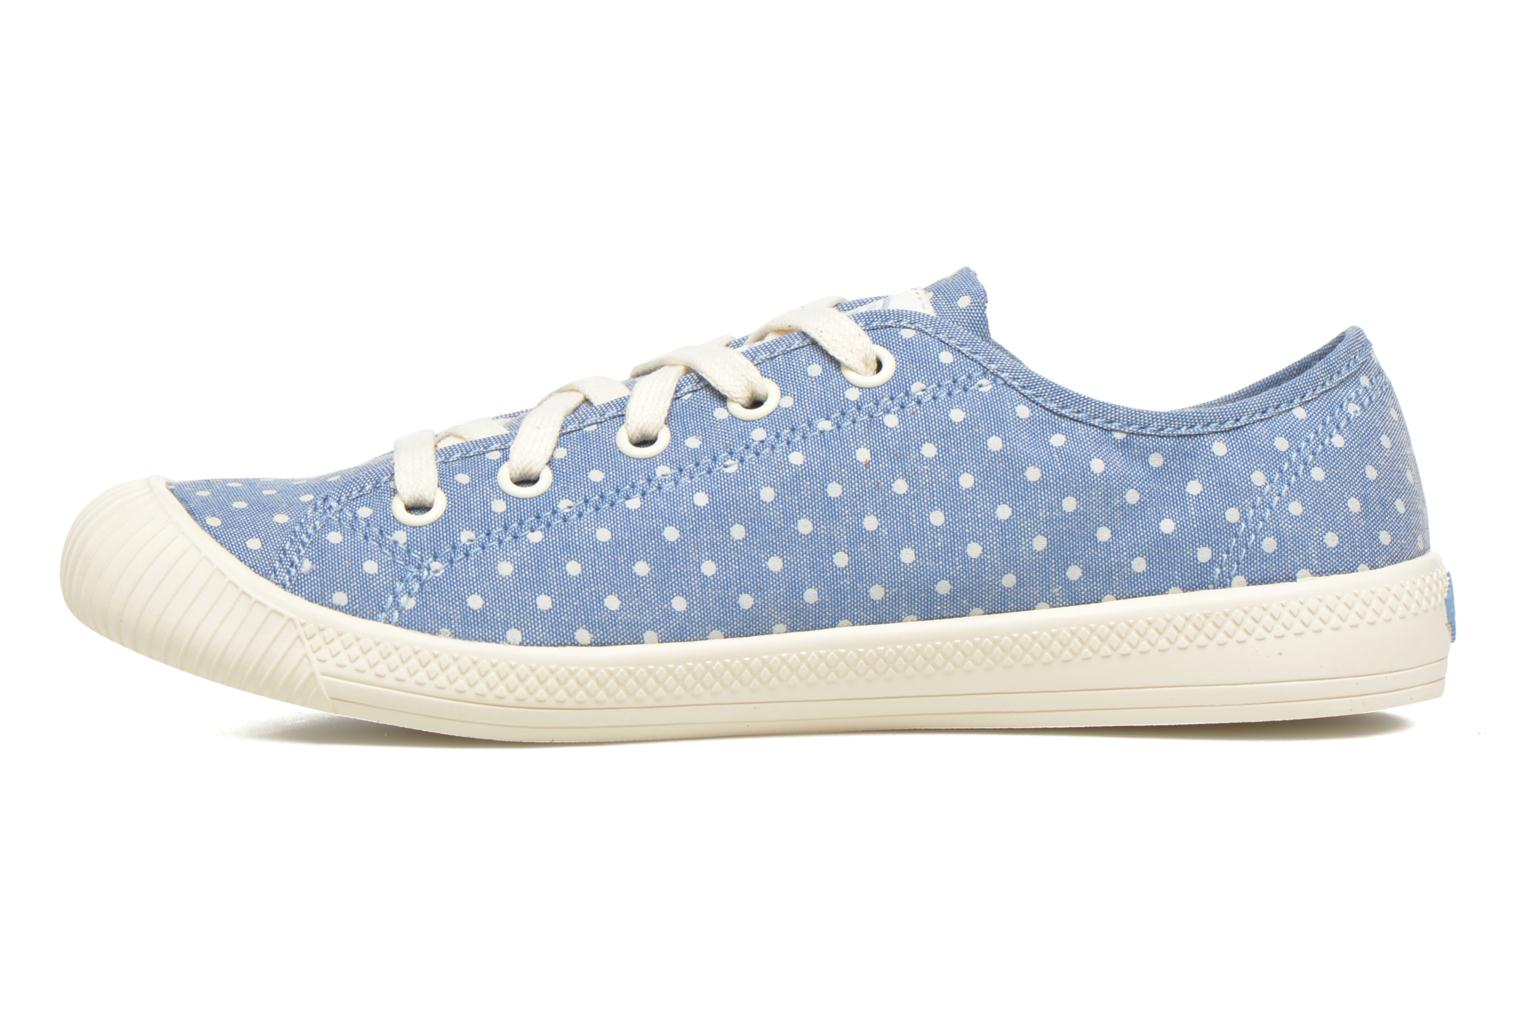 Flex Lace Pd W Blue/Antique White/Polka